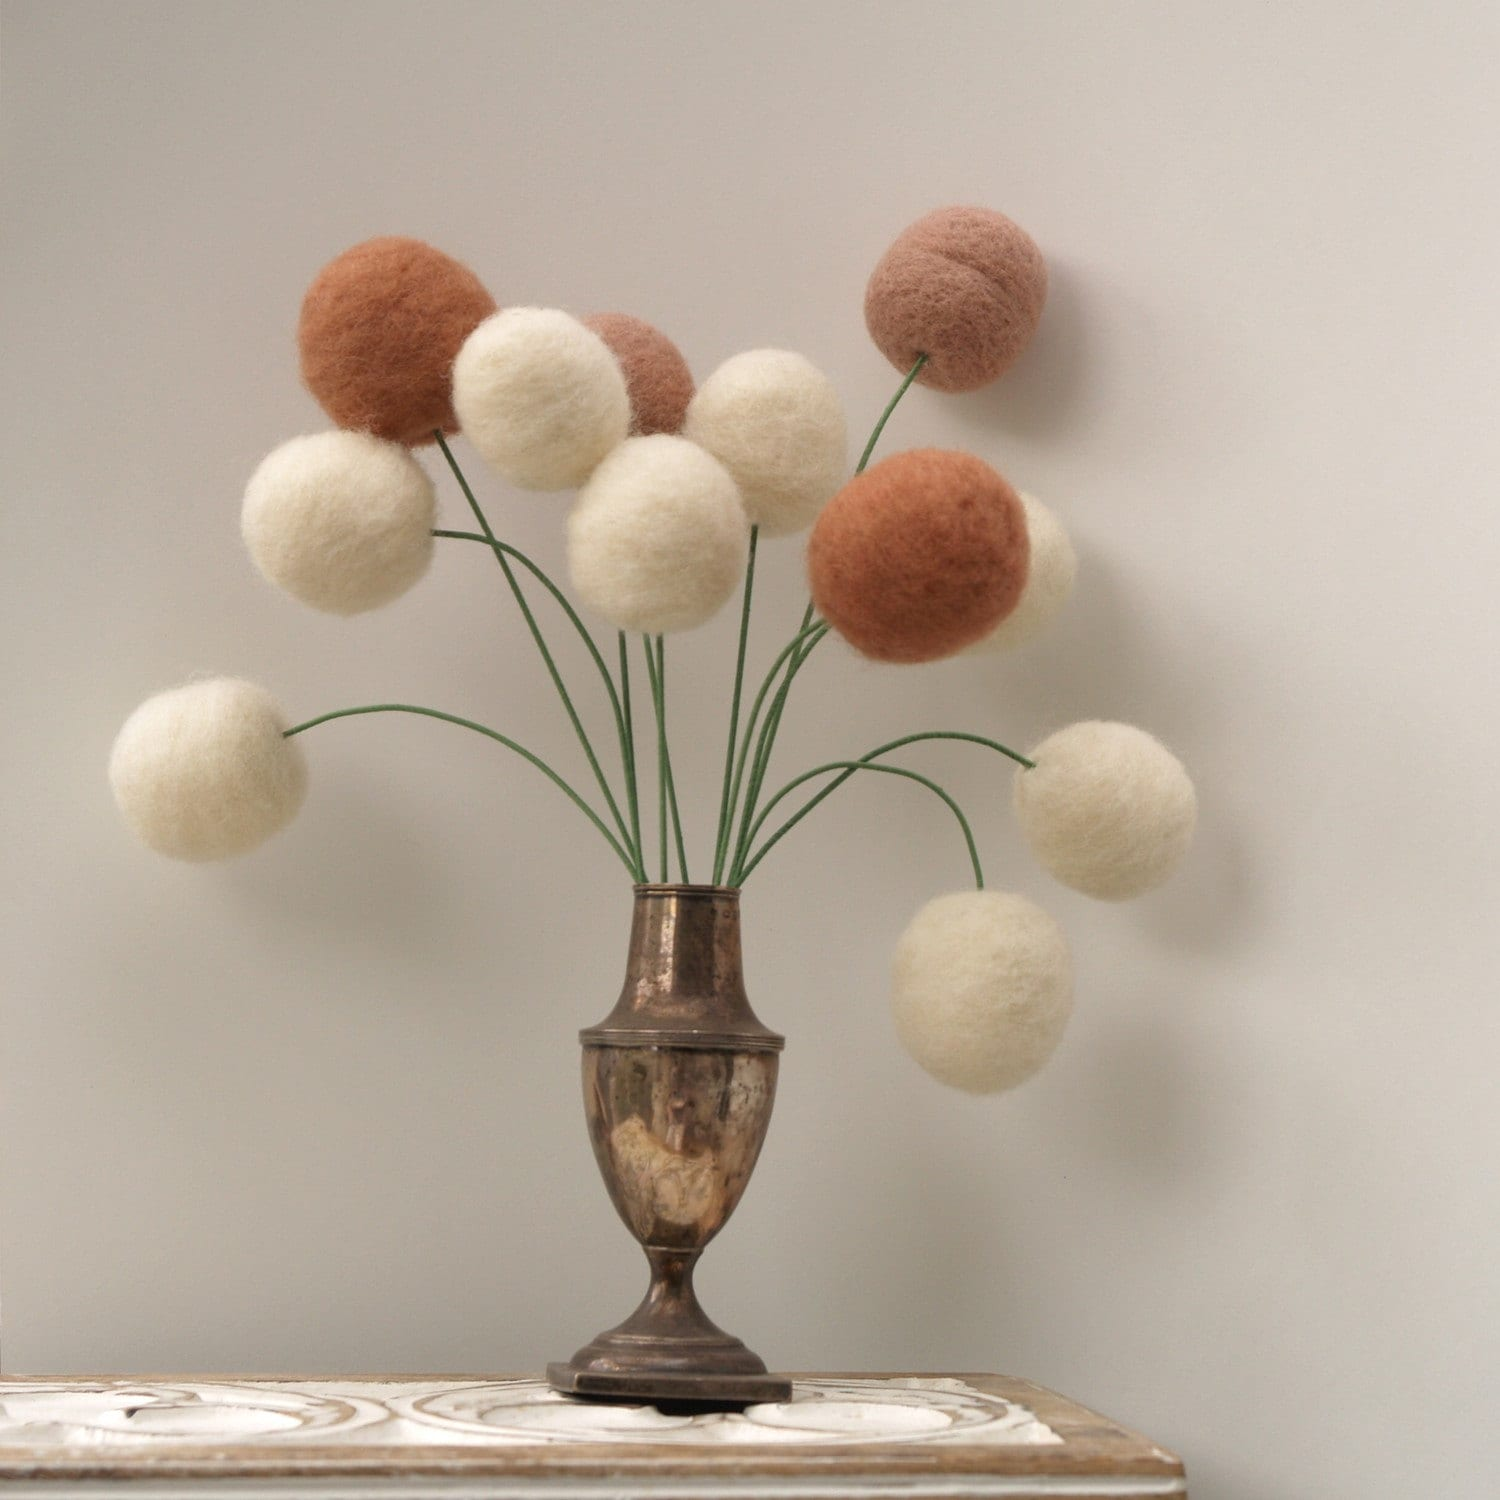 10 Large Brown and white Craspedia Stems - Spring Wool Blossoms eco friendly and ever lasting nature